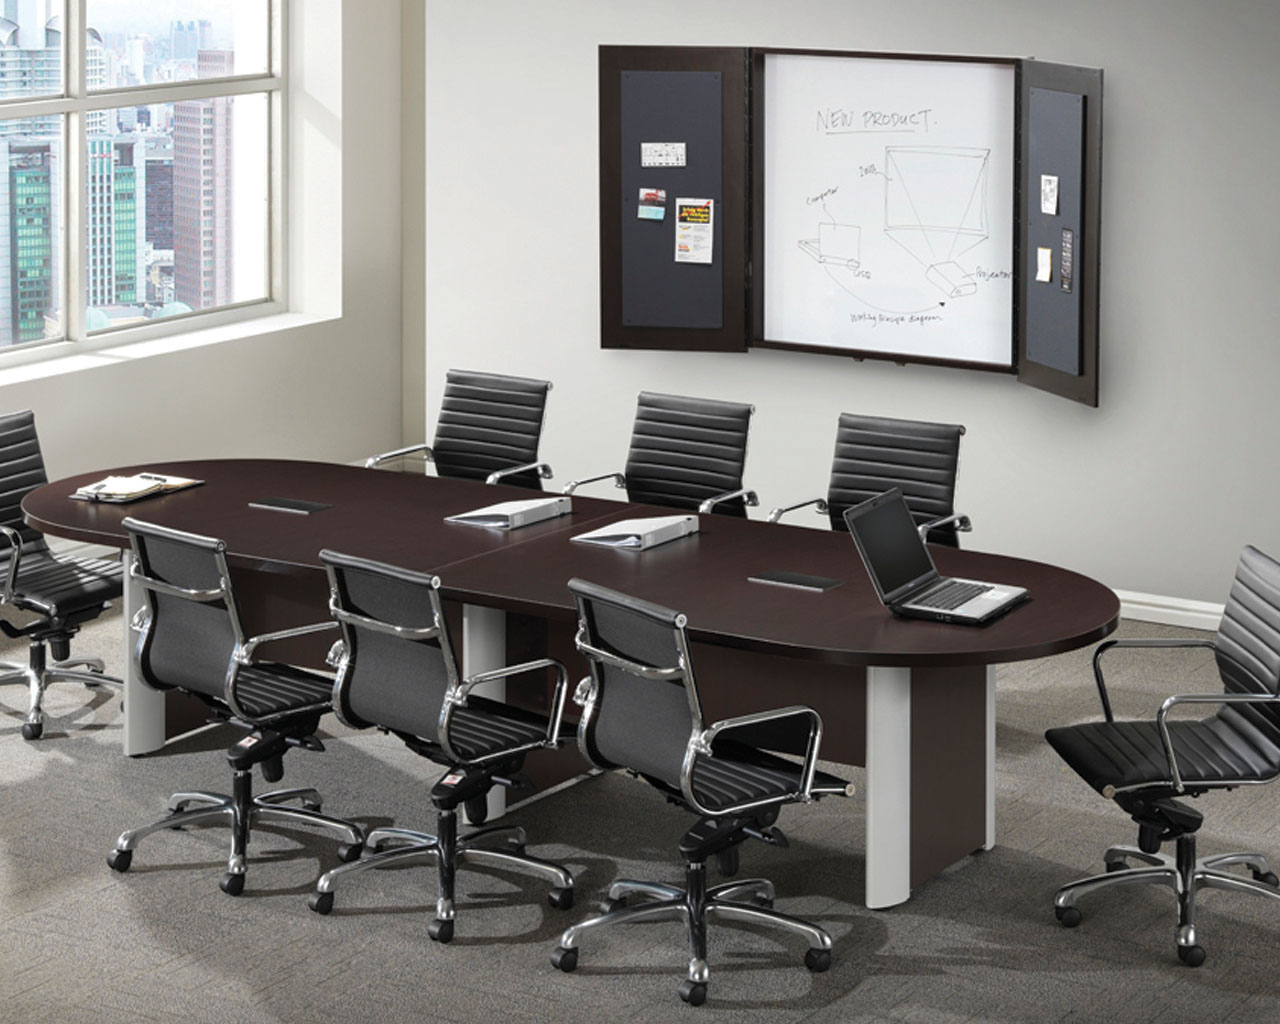 tables classroom coalesse steelcase page products this conference e share table